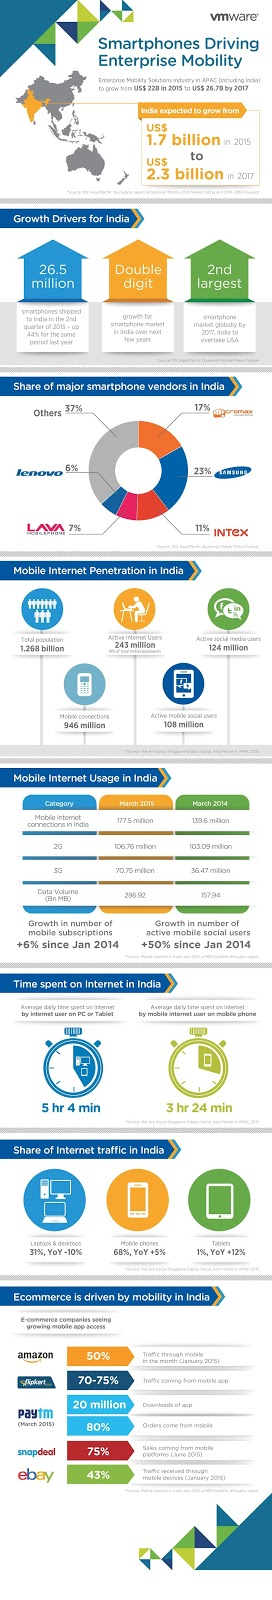 VMware aligns business mobility offerings in India to US $2.3B market opportunity by 2017